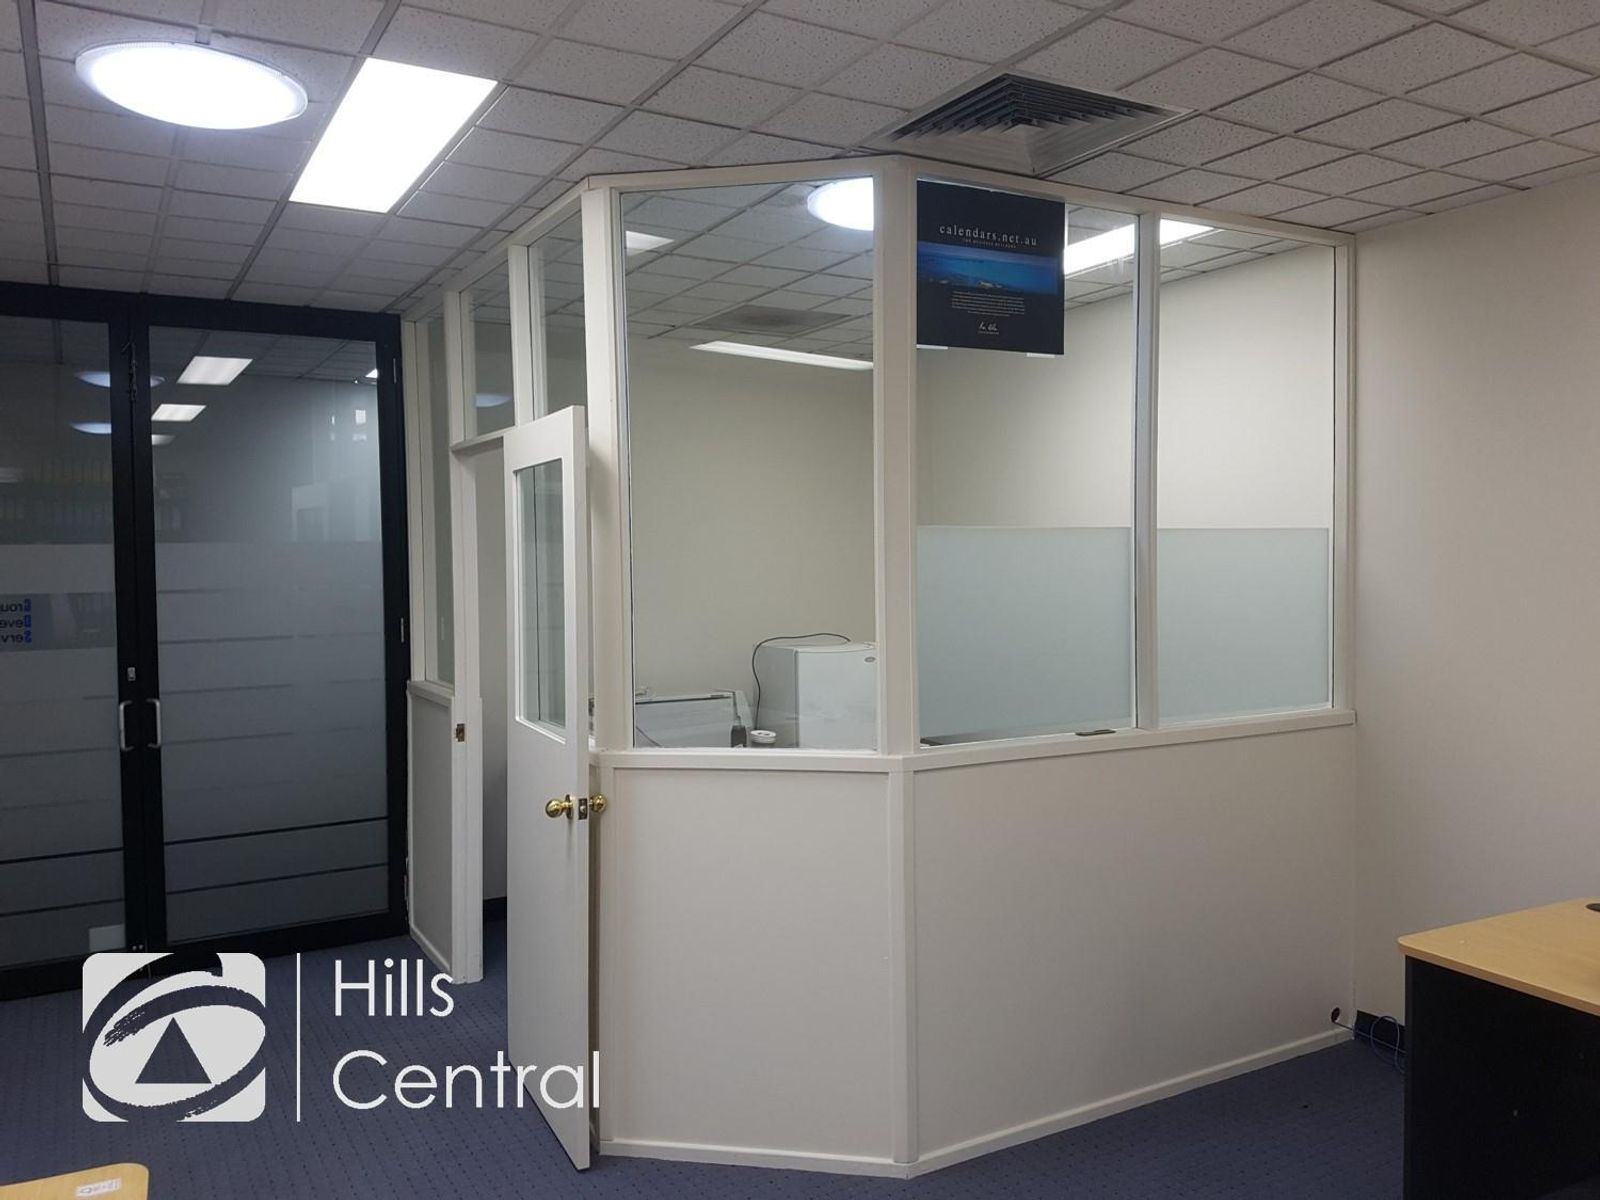 16/265-271 Pennant Hills Road, Thornleigh, NSW 2120